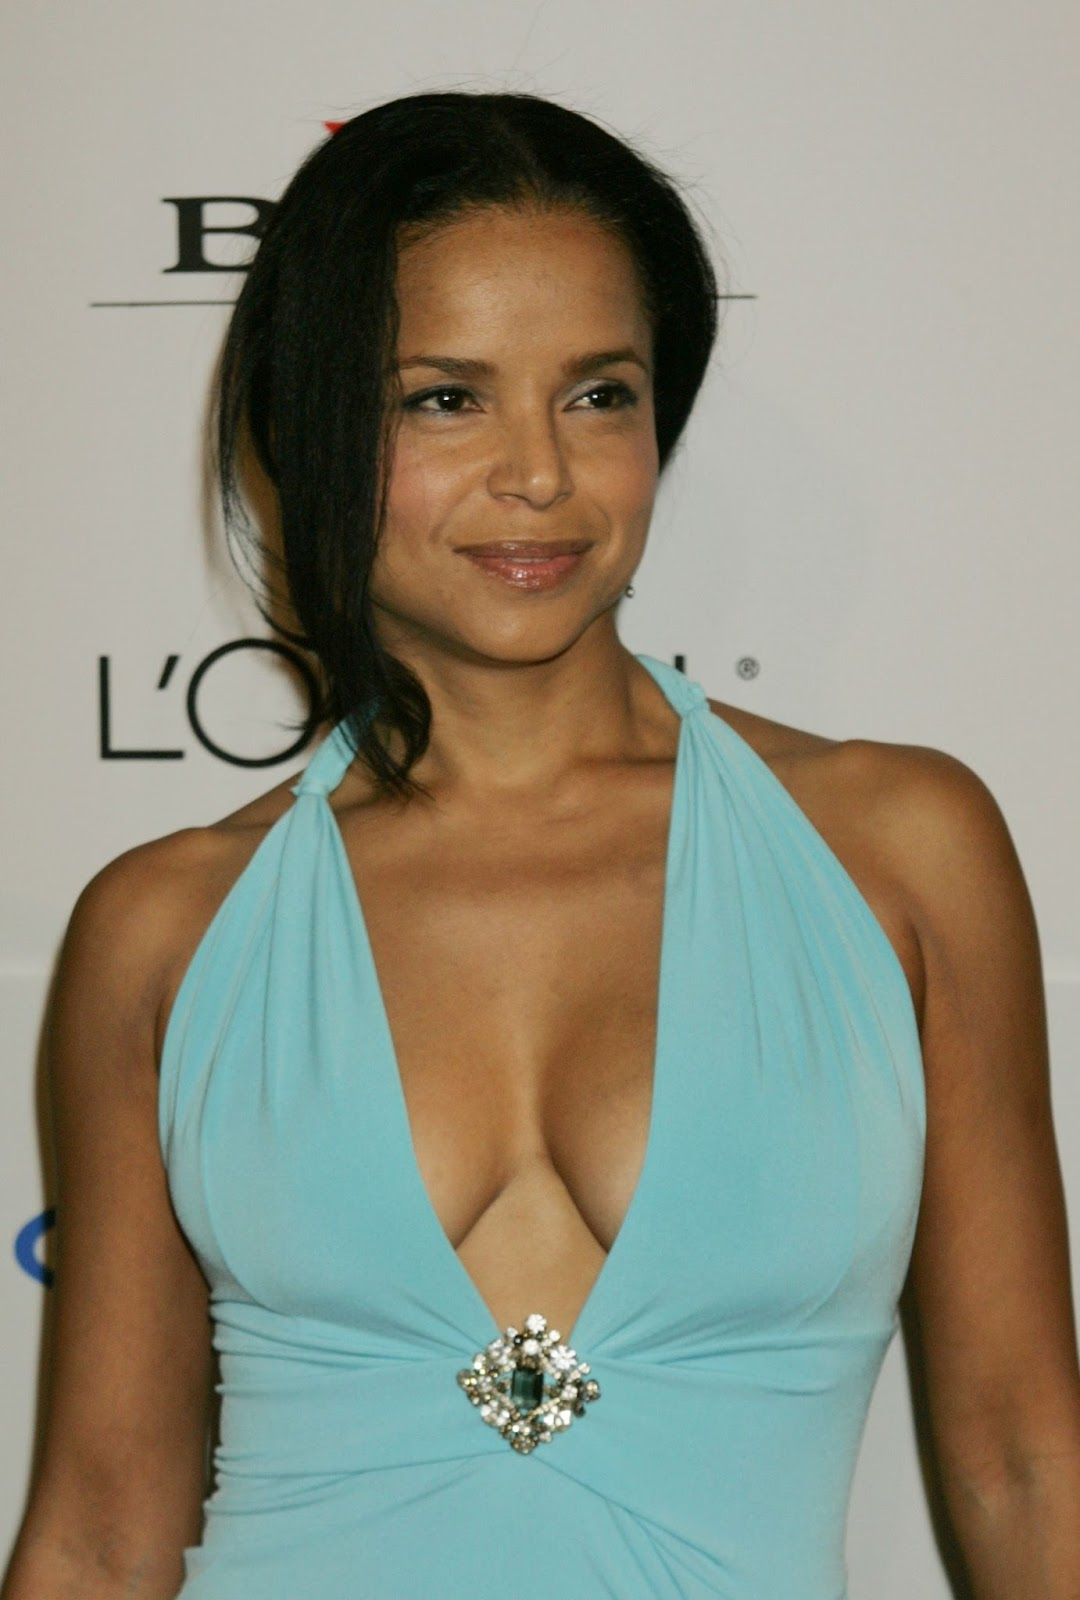 Recommend you Victoria rowell nude pics share your